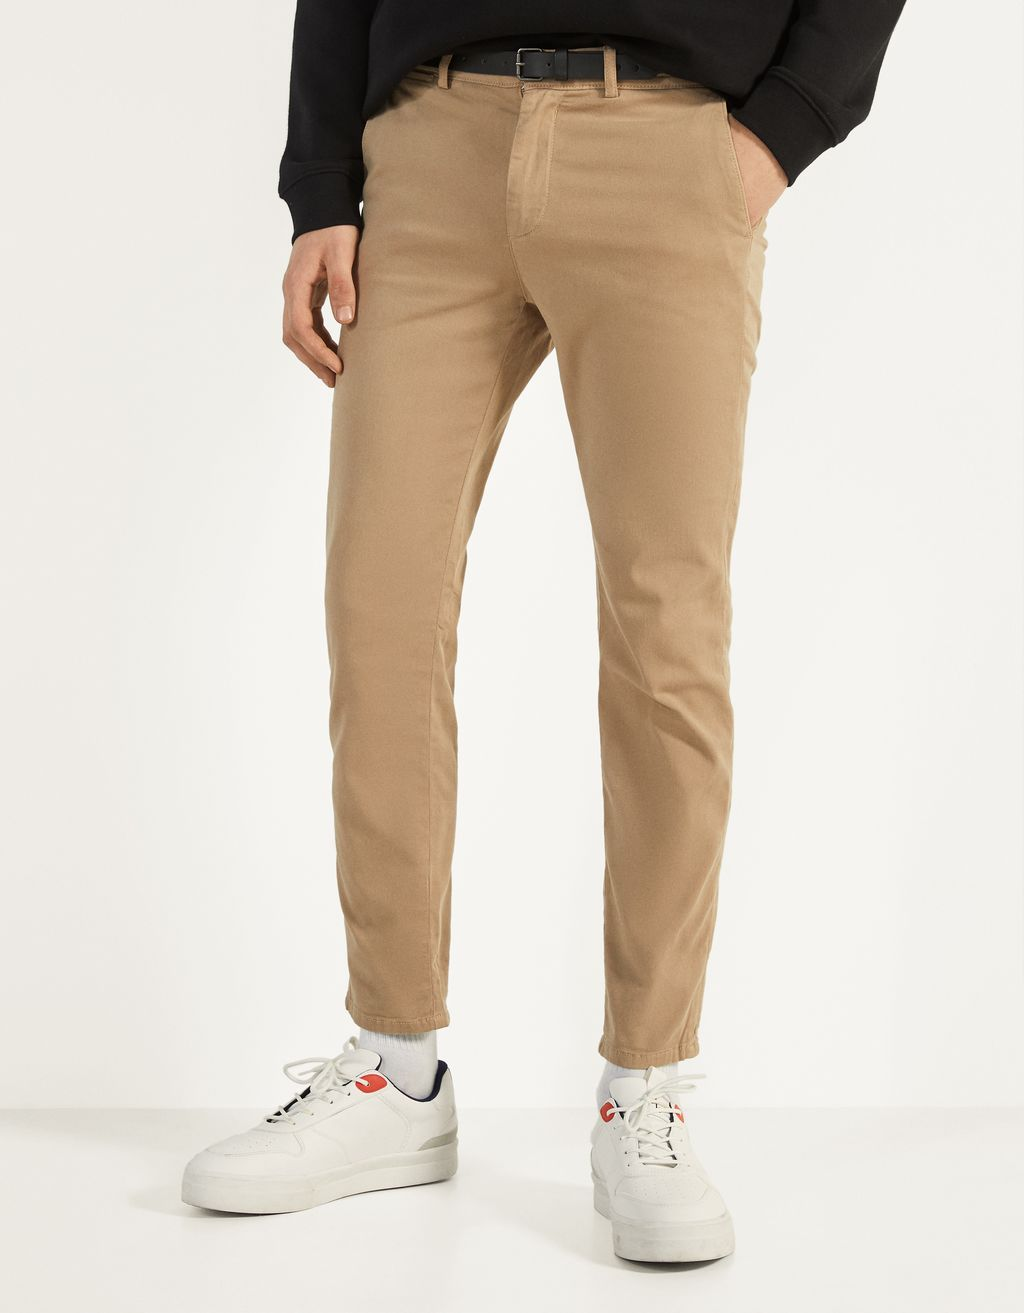 Slim Fit chino nadrág övvel